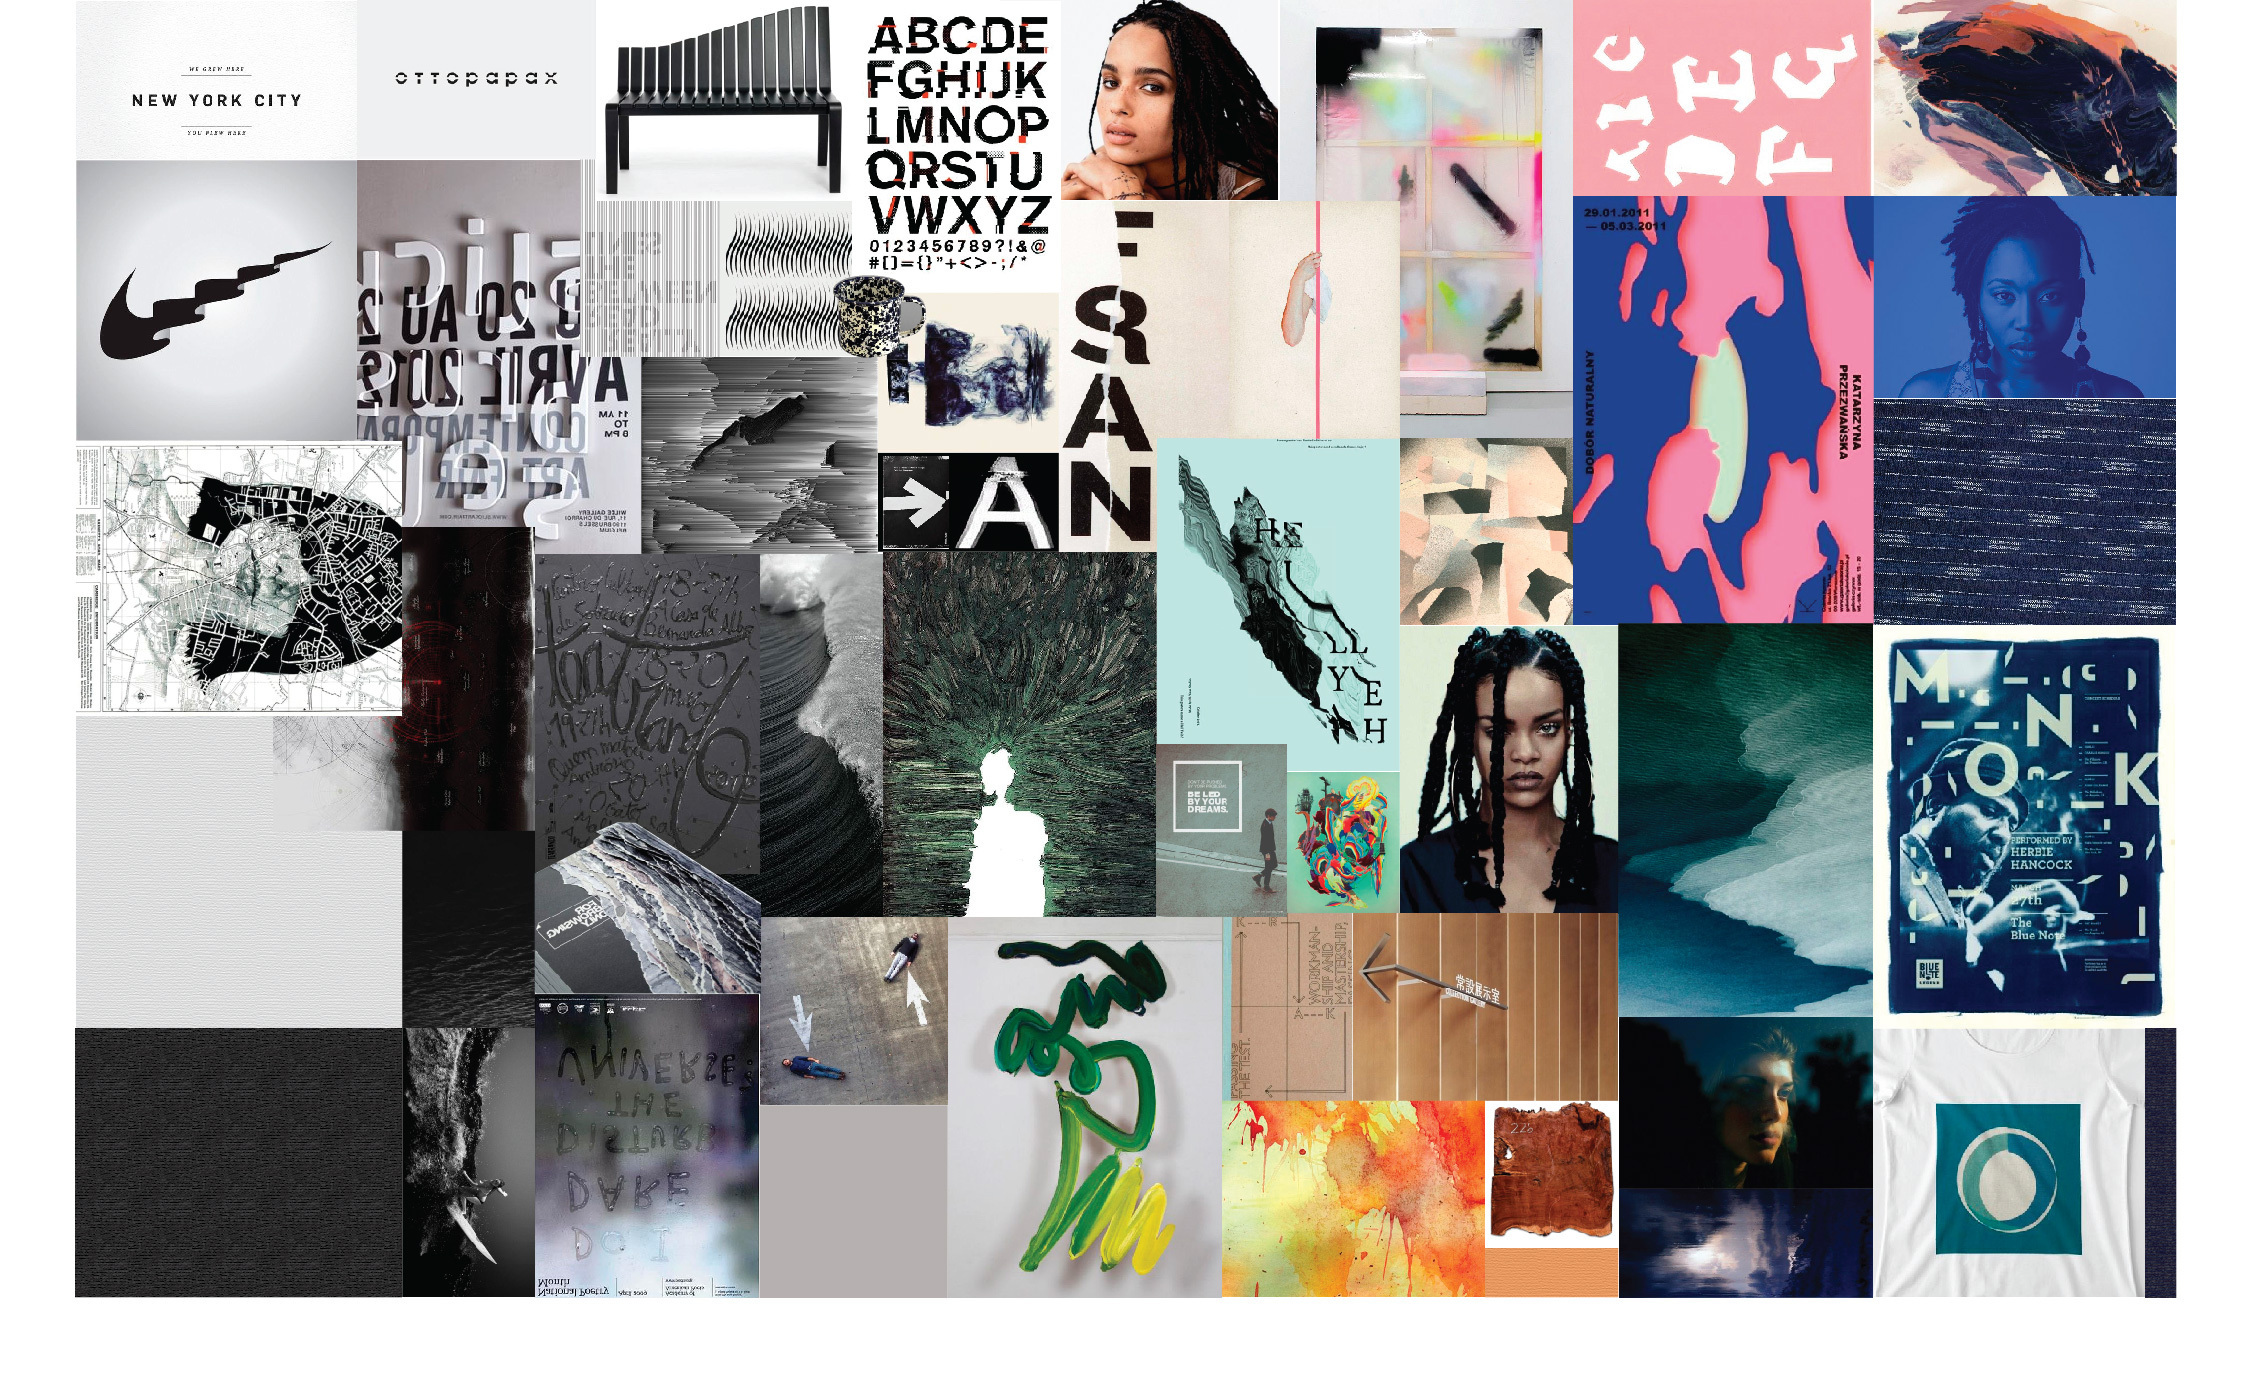 Images for the Purpose moodboard.